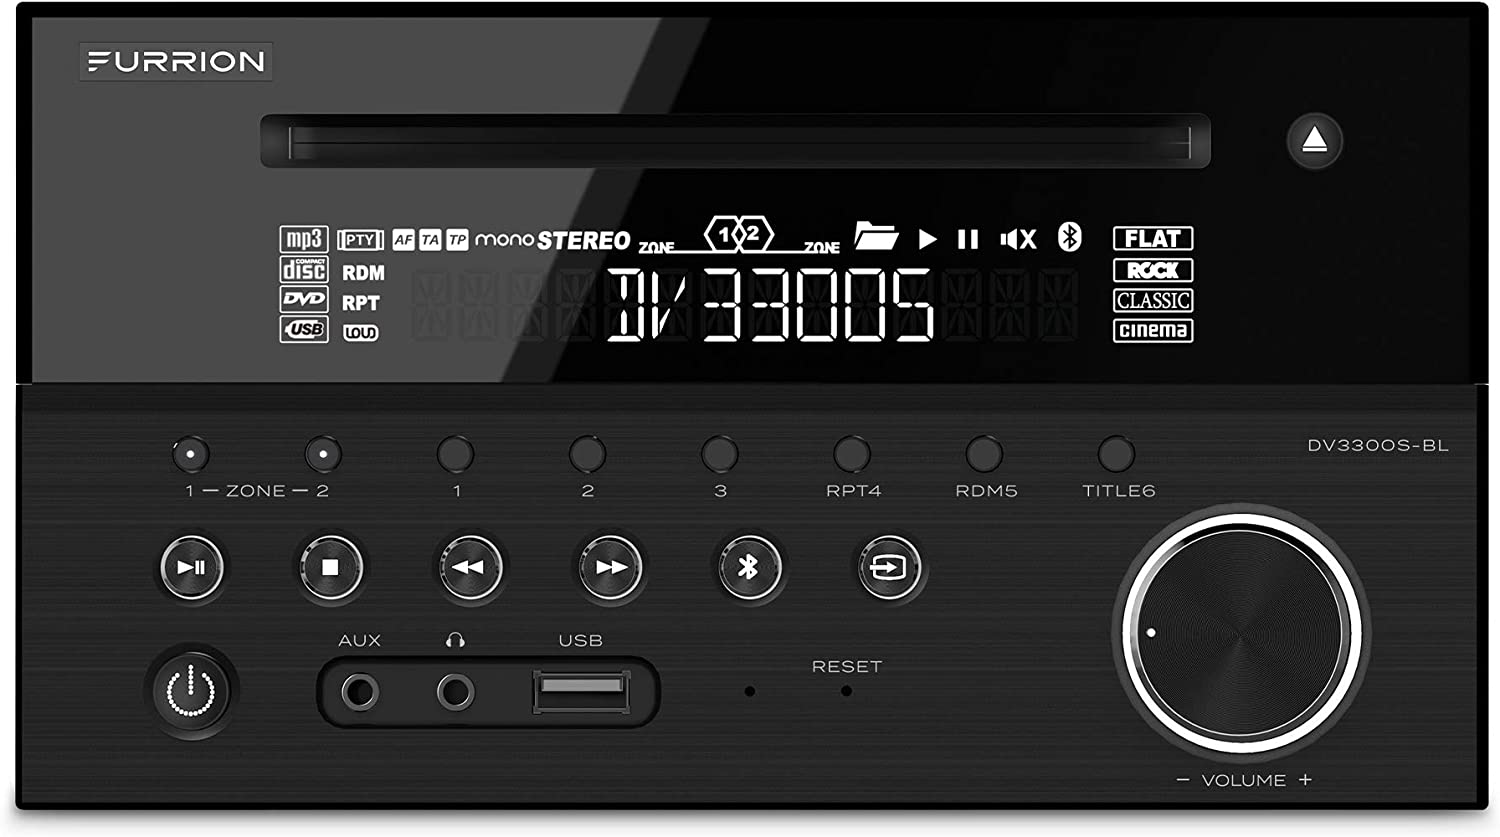 Furrion 120W 2-Zone Entertainment System with a Built-in DVD Player